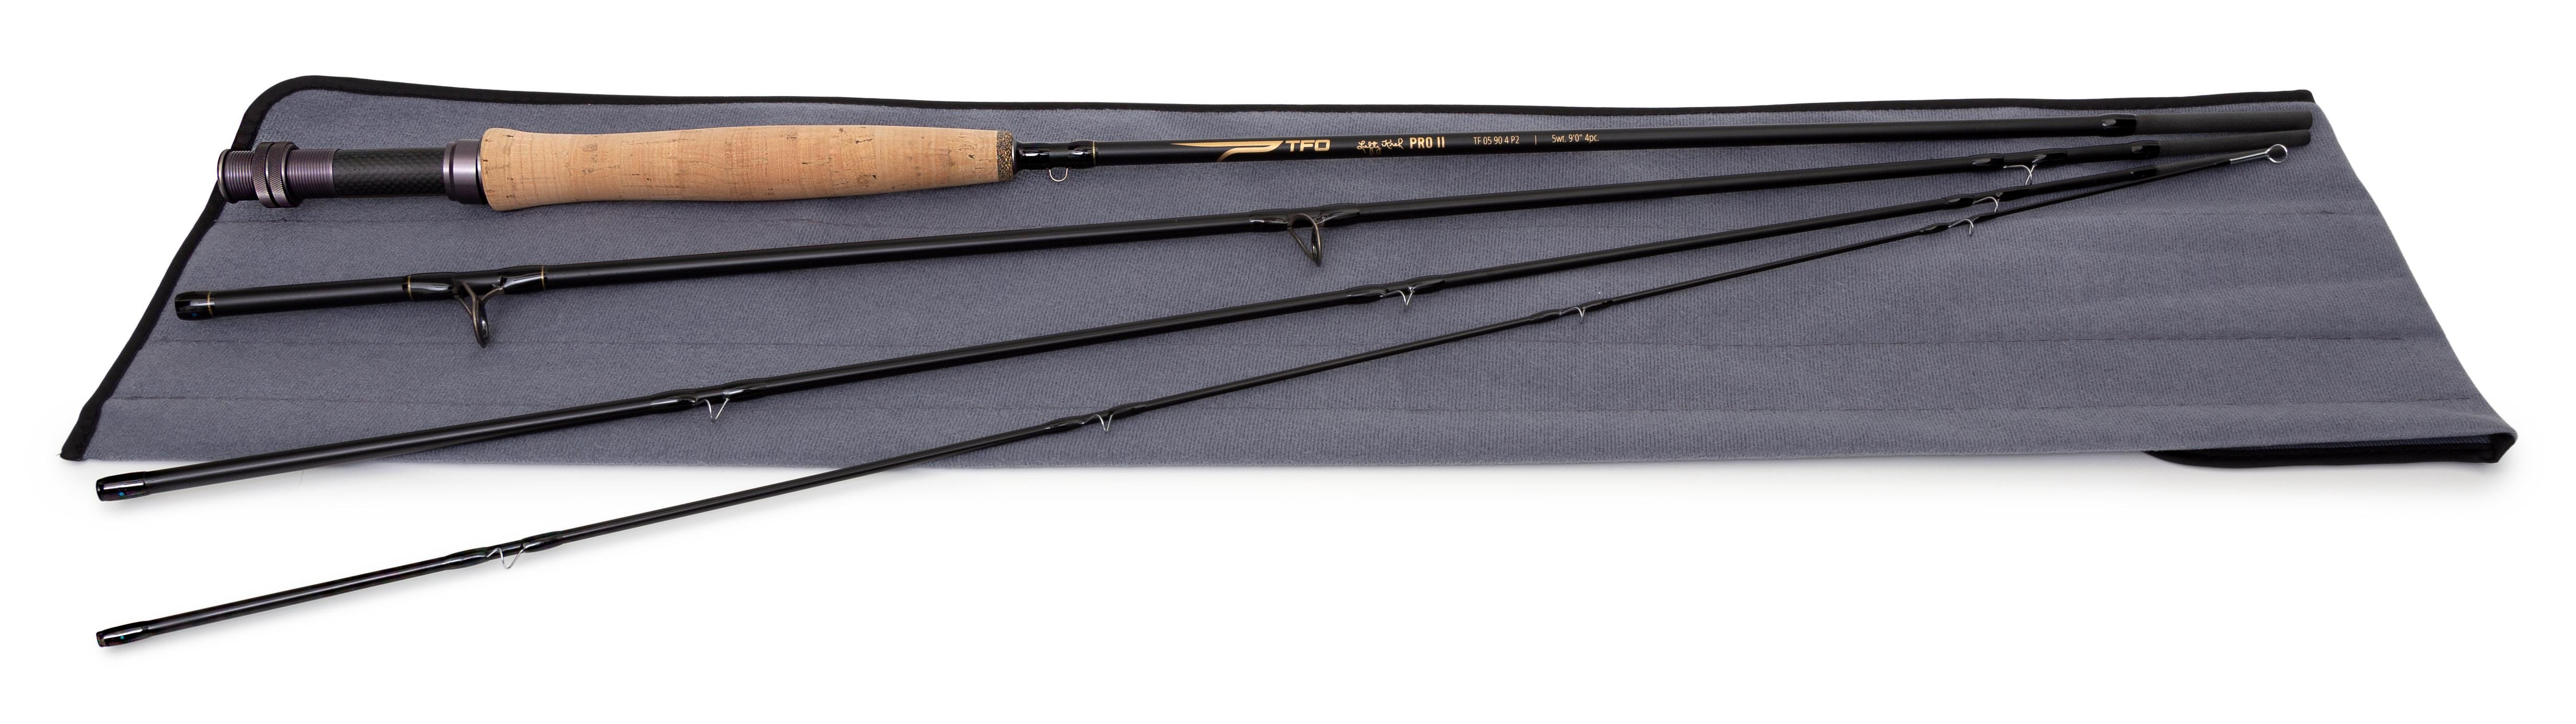 Temple Fork Outfitters Pro II Fly Rod